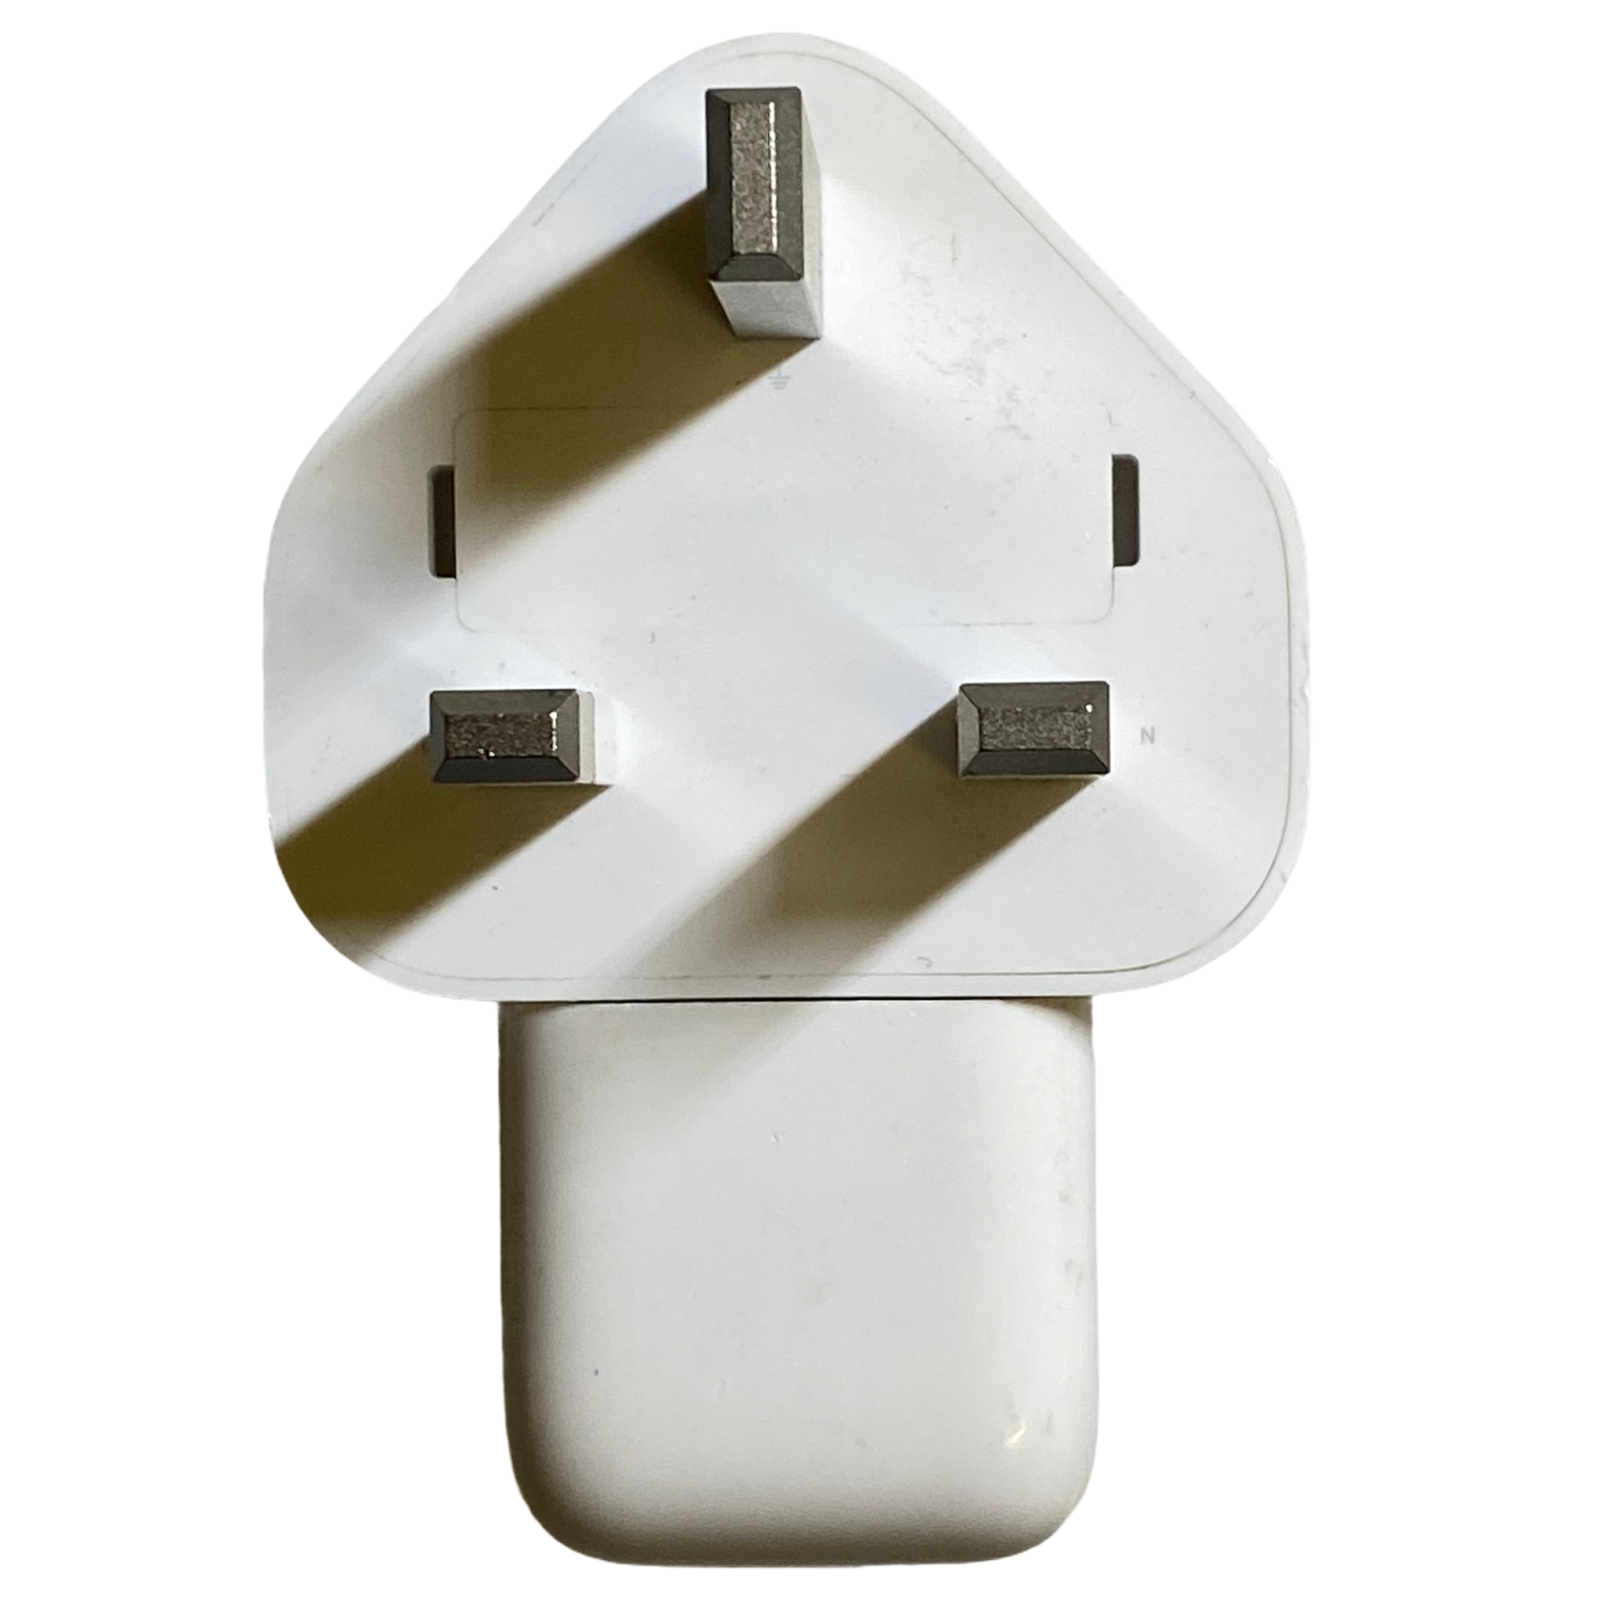 Genuine Official Apple Mains Wall Plug Adapter Mac 29w A1540 or 30w A1882